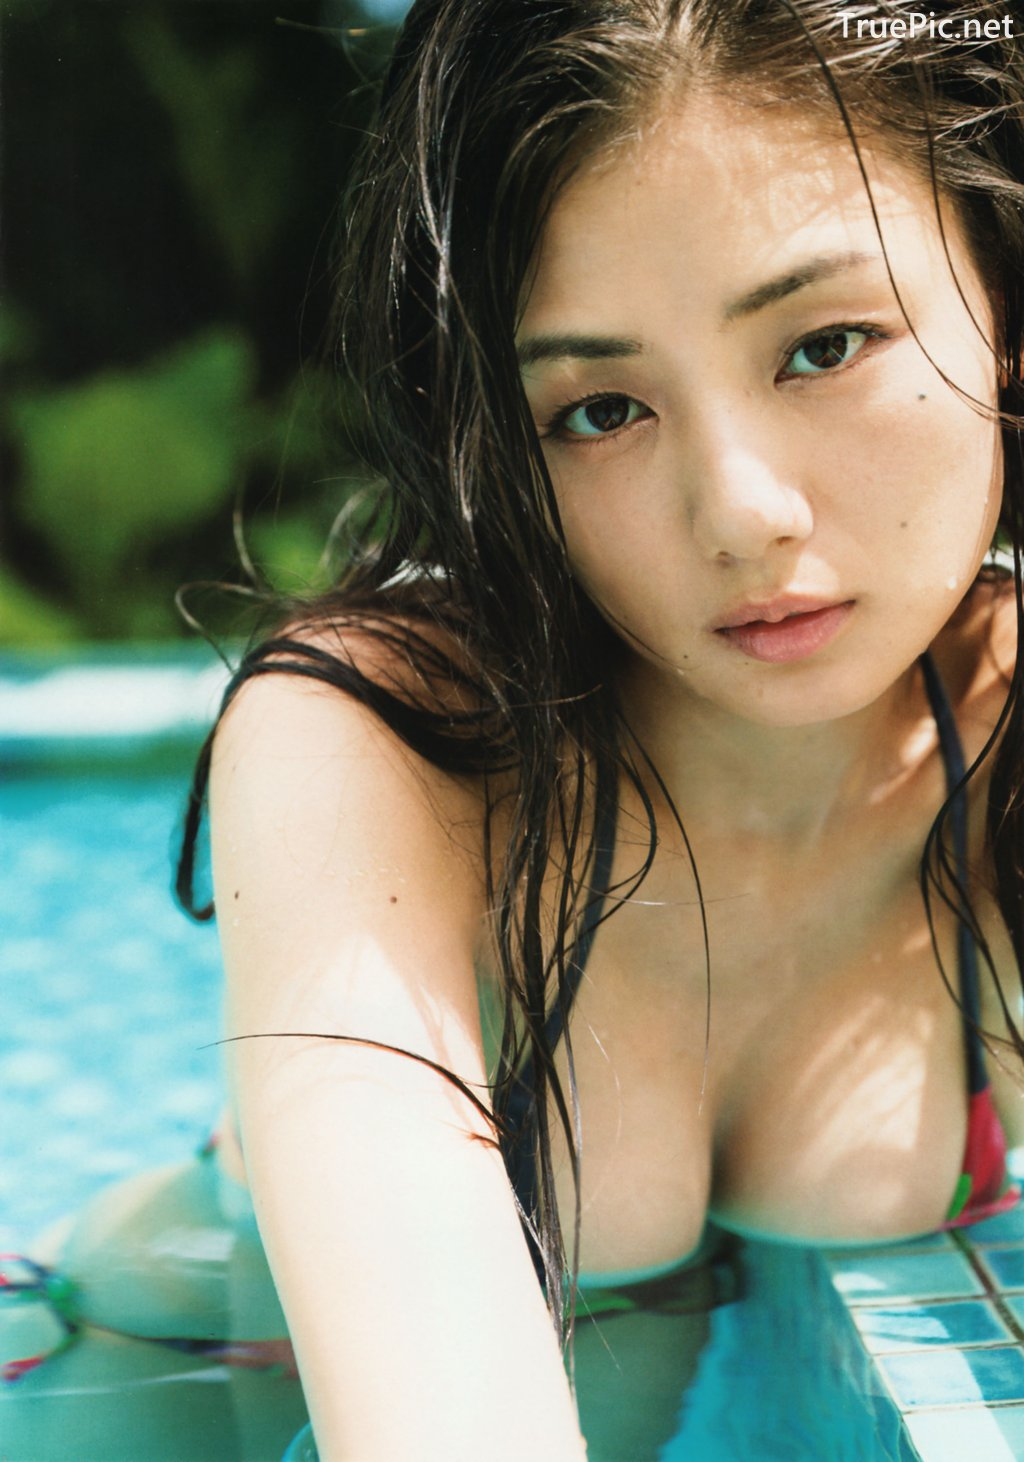 Image-Japanese-Actress-Gravure-Idol-Moemi-Katayama-Mermaid-From-Tokyo-Japan-TruePic.net- Picture-7